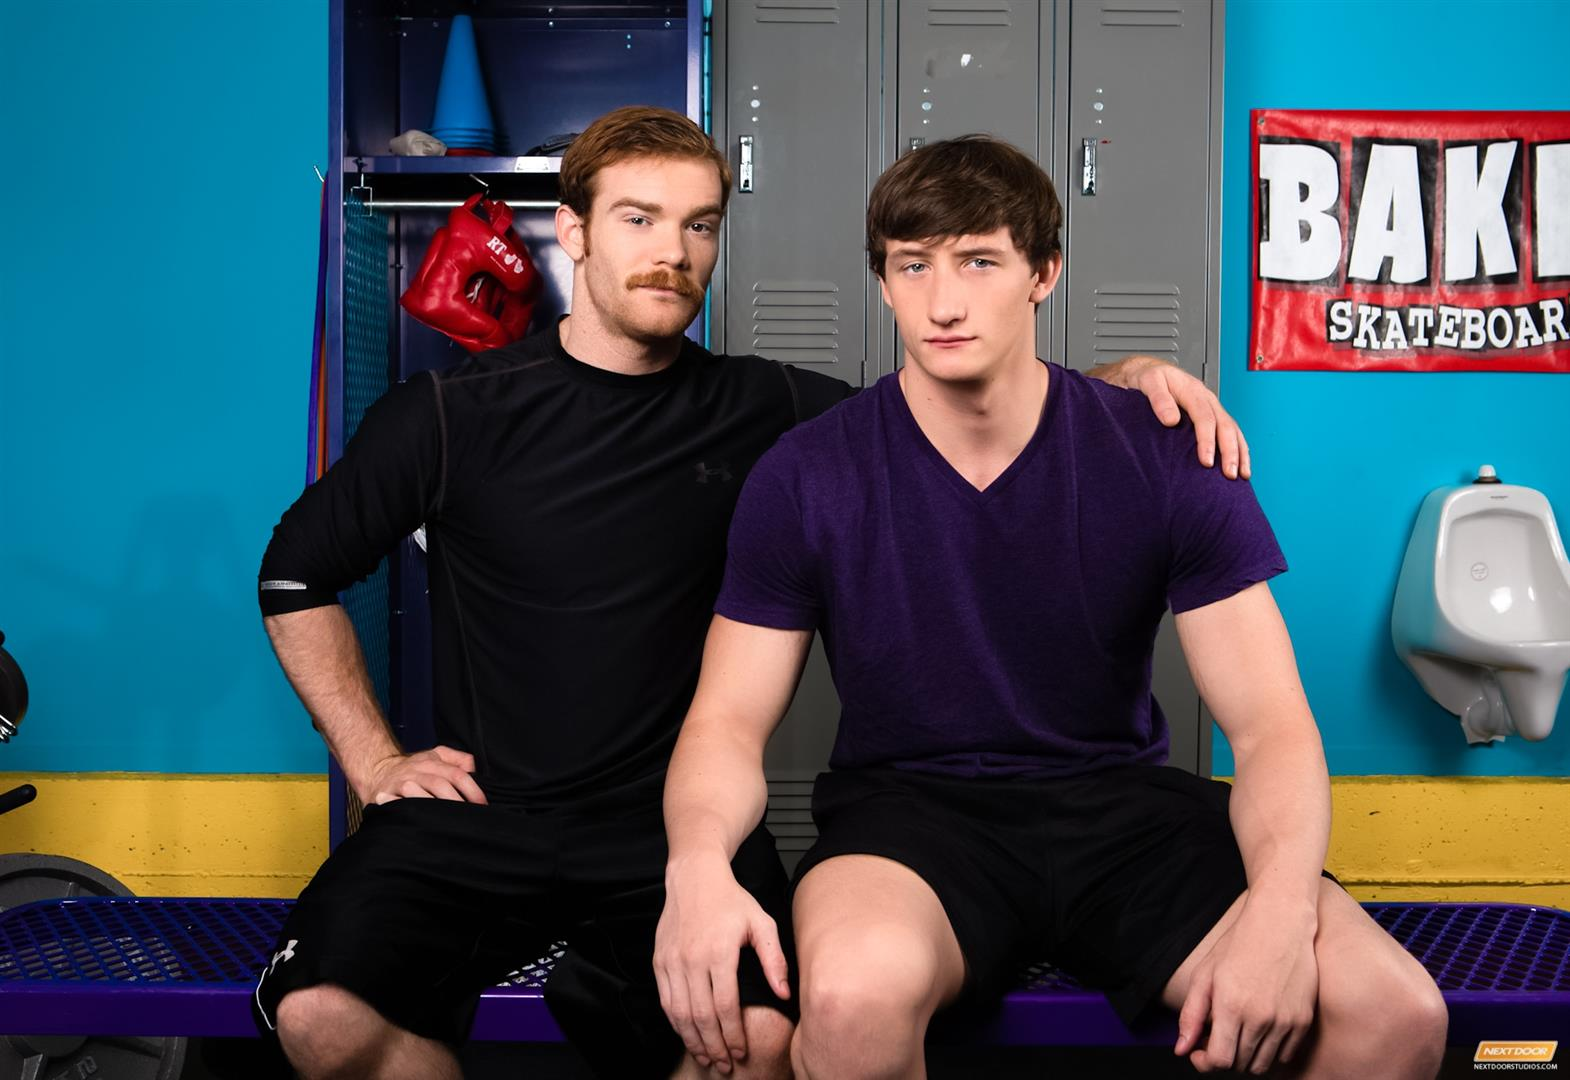 Next-Door-World-James-Jamesson-and-Lance-Alexander-muscle-hunk-gets-fucked-at-the-gym-Amateur-Gay-Porn-01 Redhead James Jamesson Fucking Muscle Hunk Lance Alexander